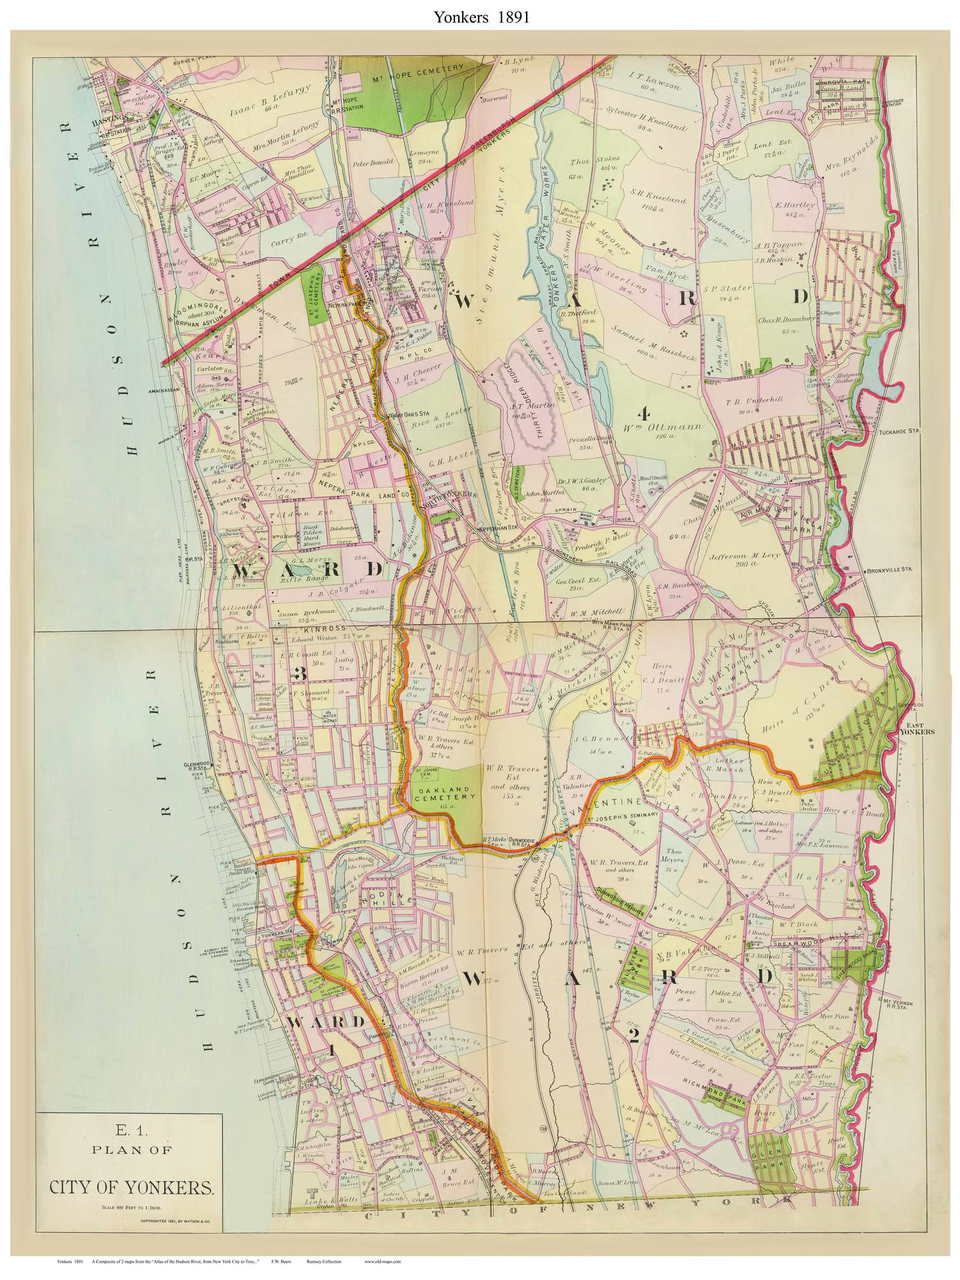 City of Yonkers - Custom, 1891 - Old Map Reprint - NY Hudson River Yonkers Map on richfield springs map, stuyvesant map, staten island map, suffolk counties map, cornwall-on-hudson map, east ramapo map, rondout valley map, wawayanda map, new york map, white plains map, tarrytown train station map, rowayton map, fairport map, clason point map, yaphank map, lakewood map, westchester map, tioga downs map, whitestone map, queens museum map,